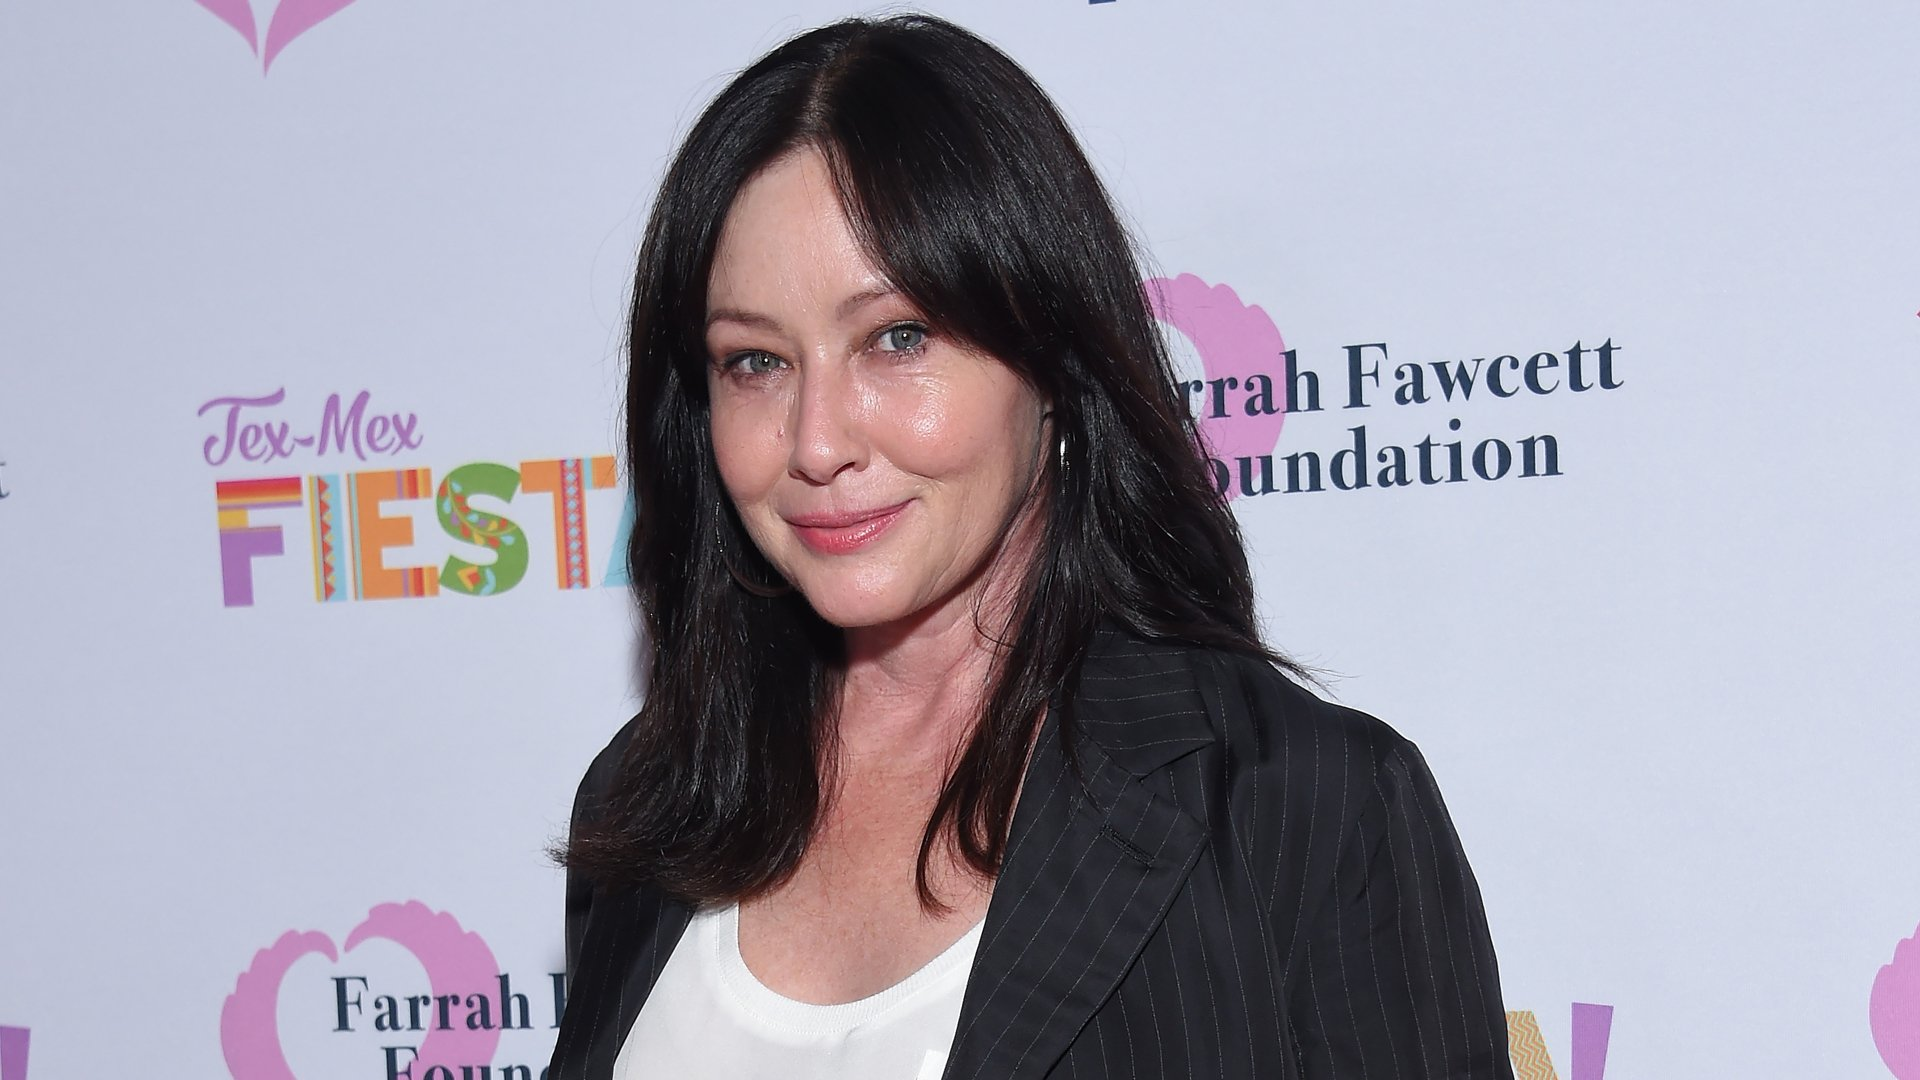 """Shannen Doherty walks the carpet at the Farrah Fawcett Foundation's """"Tex-Mex Fiesta"""" honoring Marcia Cross at Wallis Annenberg Center for the Performing Arts in Beverly Hills, California, on September 6, 2019. (Credit: LISA O'CONNOR/AFP via Getty Images)"""